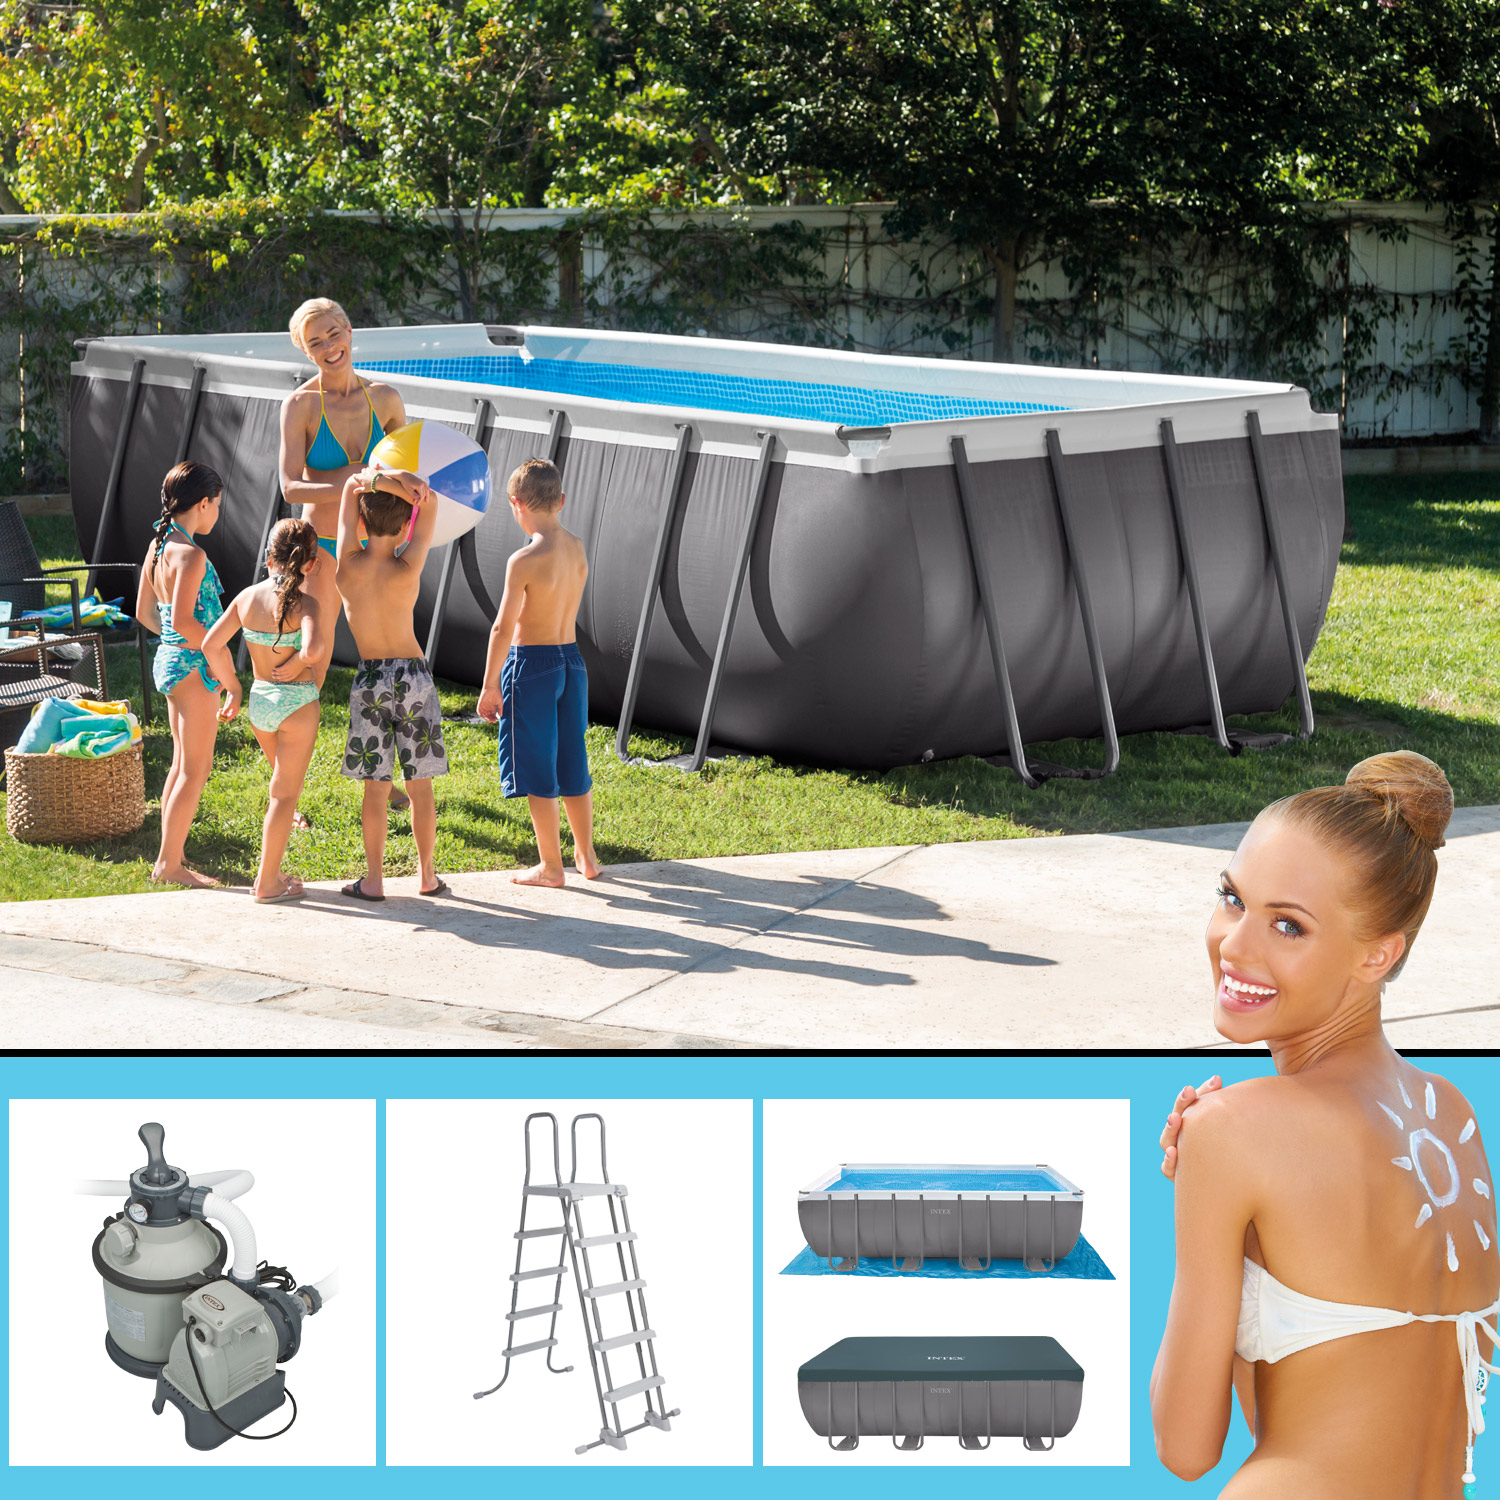 intex 549x274x132 swimming pool set rechteck stahlwand frame schwimmbad 28352gs ebay. Black Bedroom Furniture Sets. Home Design Ideas